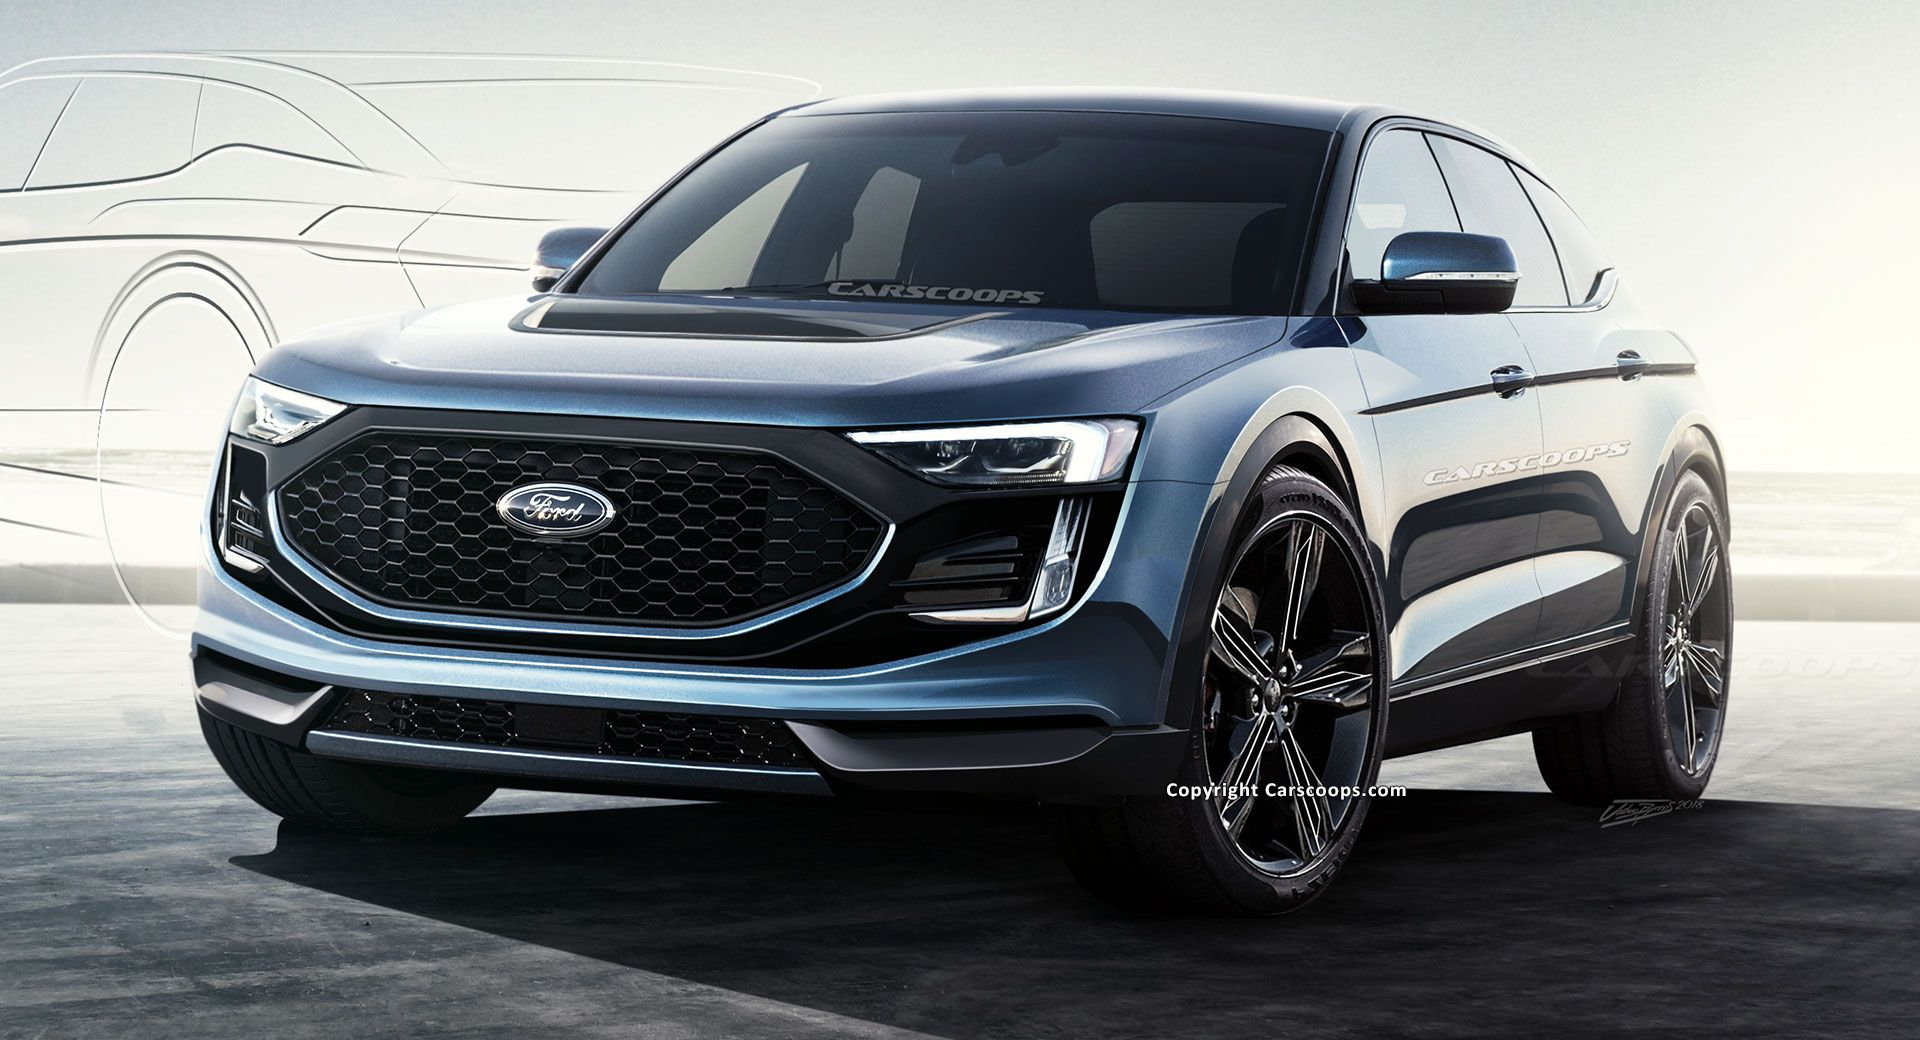 2022 Ford Mustang Electric